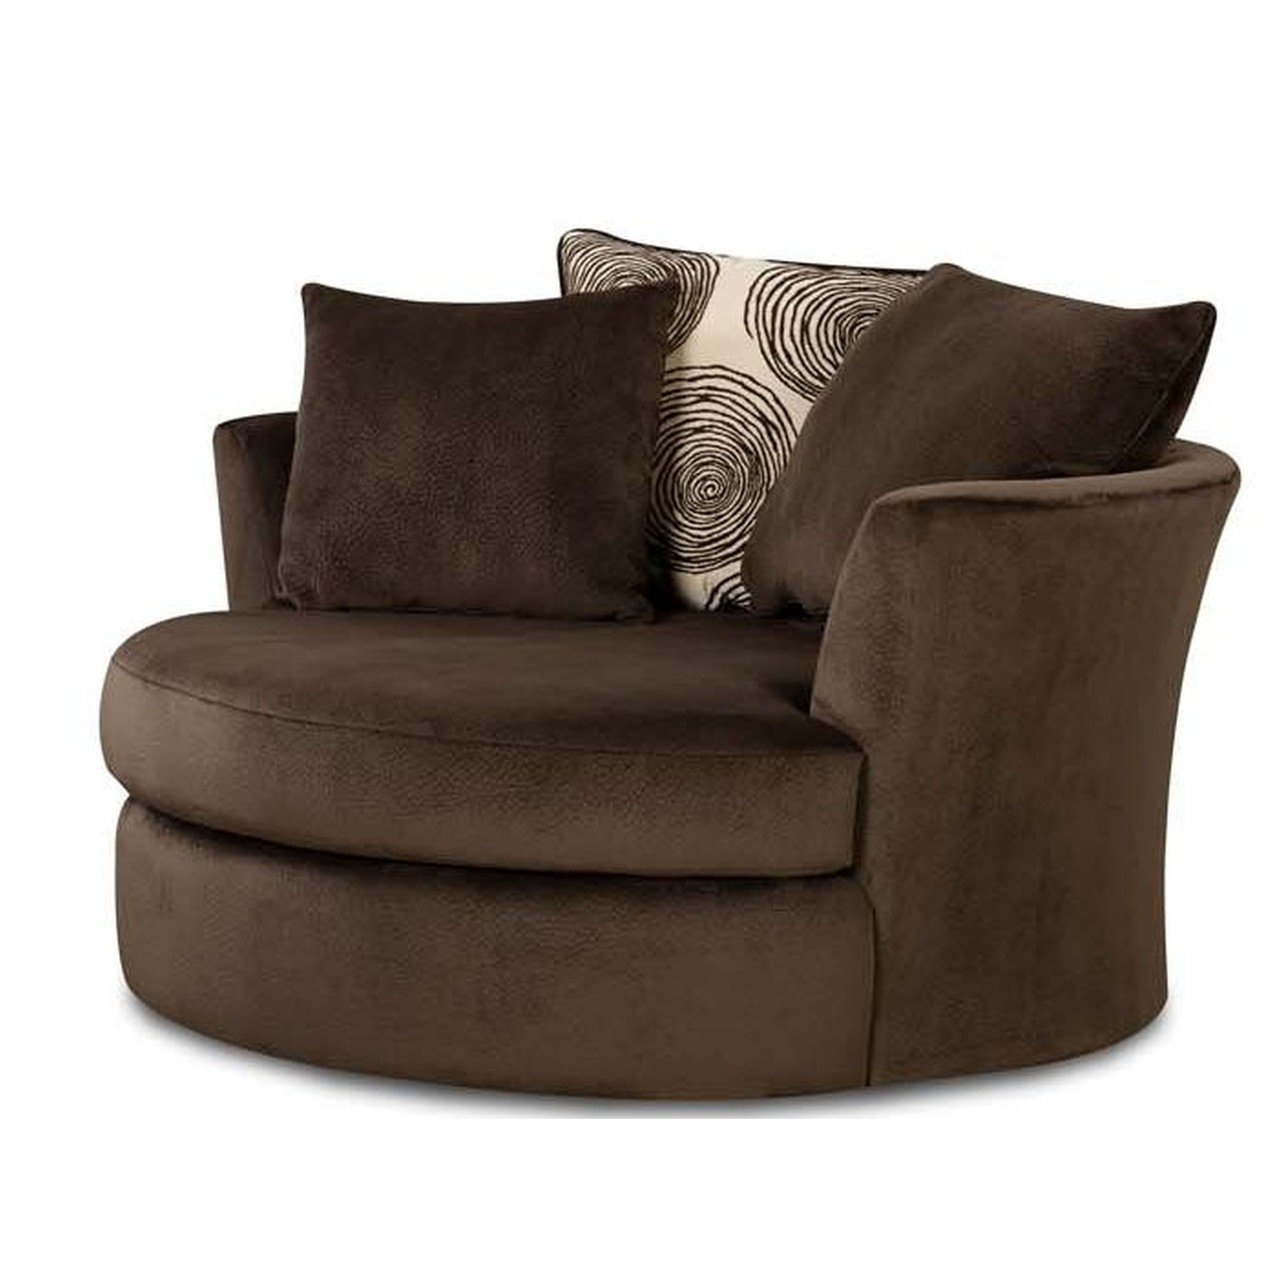 Round Swivel Chairs For Living Room With Round Sofa Chair (Image 12 of 15)